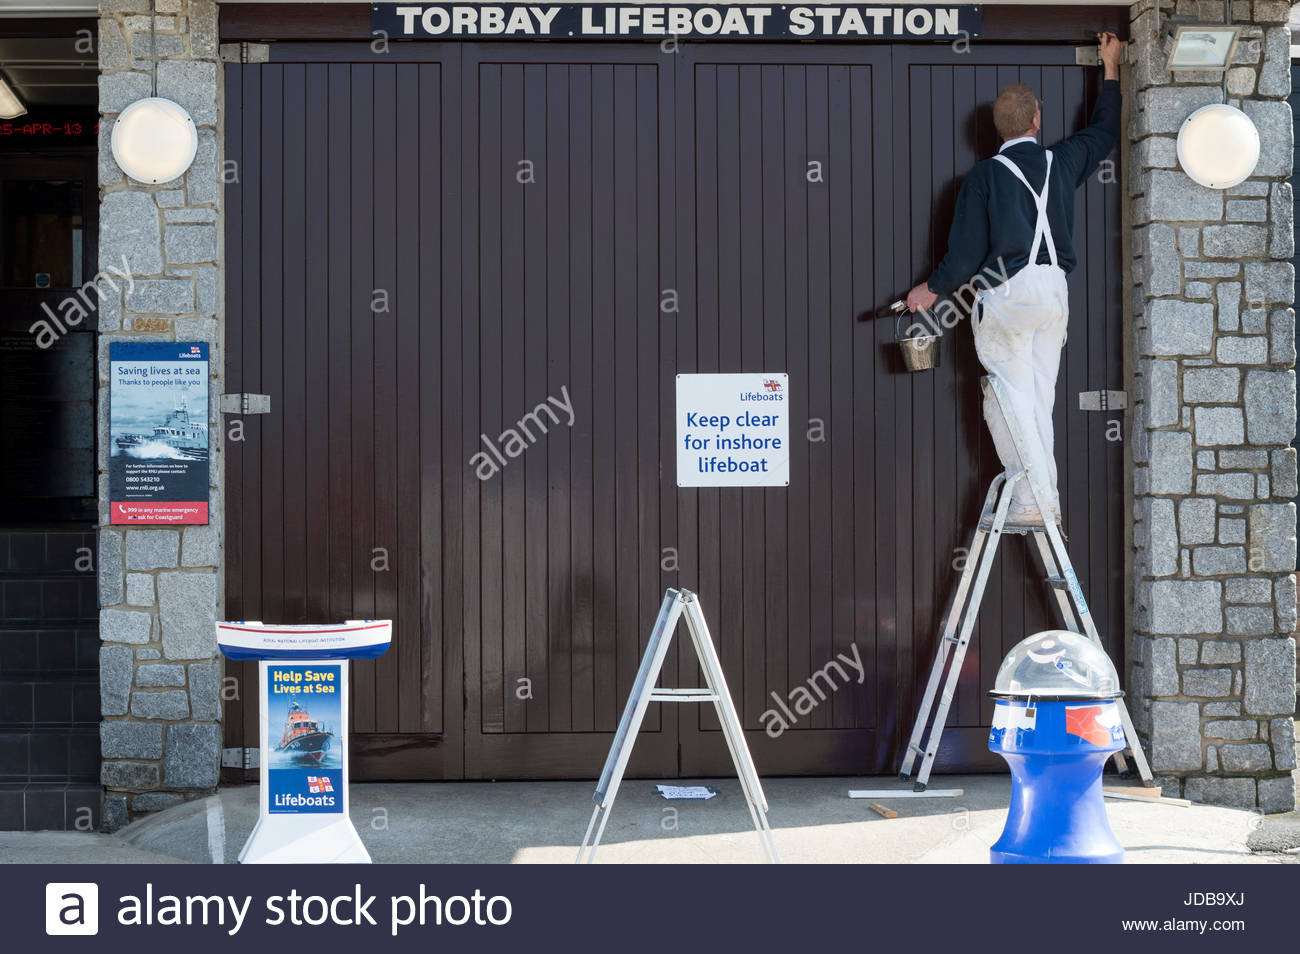 Workman up a ladder decorating the outside of the Torbay Lifeboat Station, Brixham, Devon, England - Stock Image